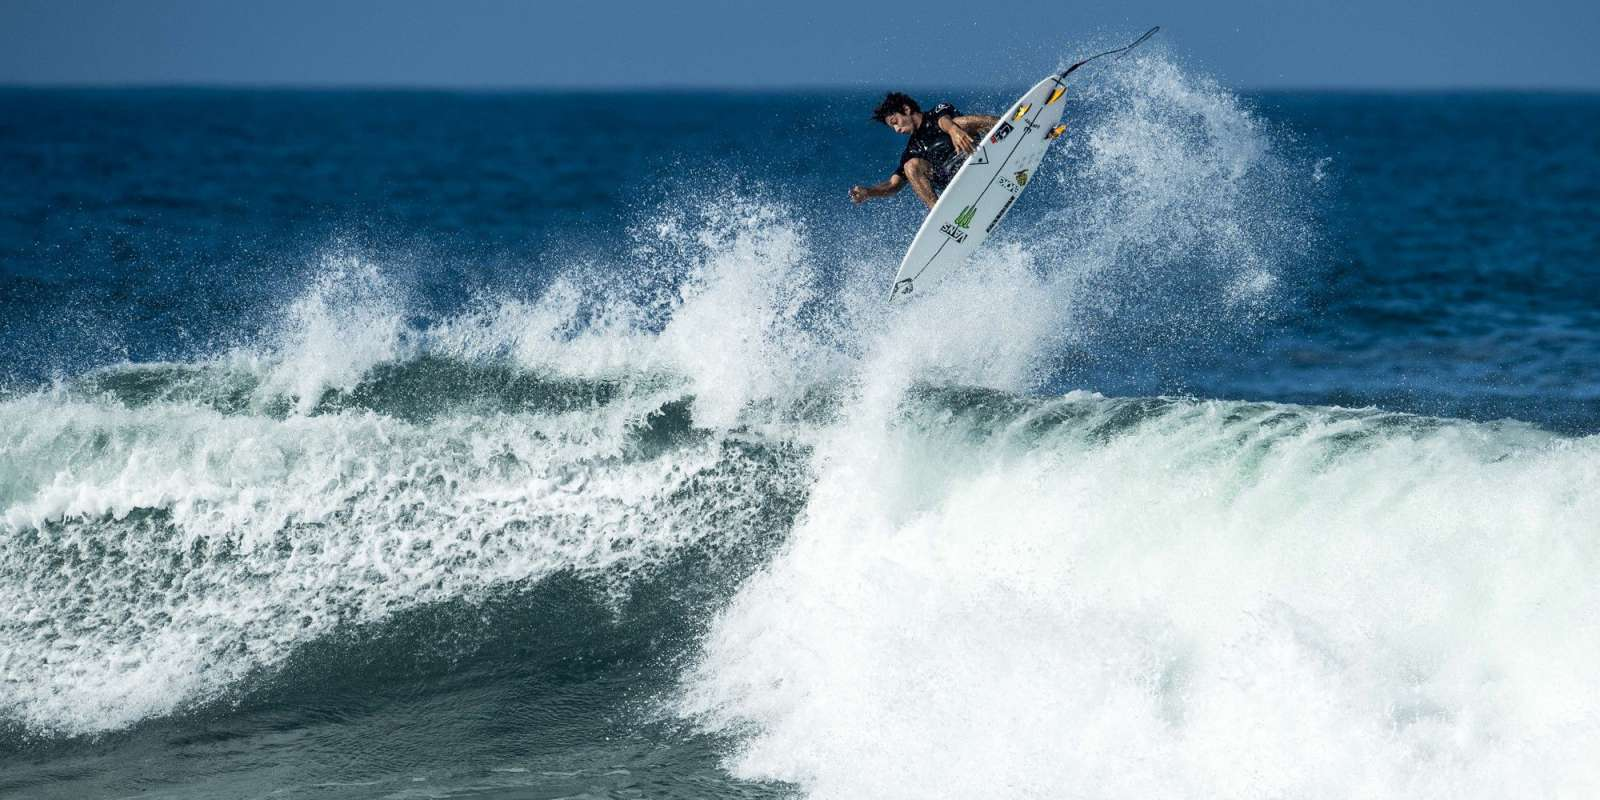 Action shots from the Oi, Rio Pro